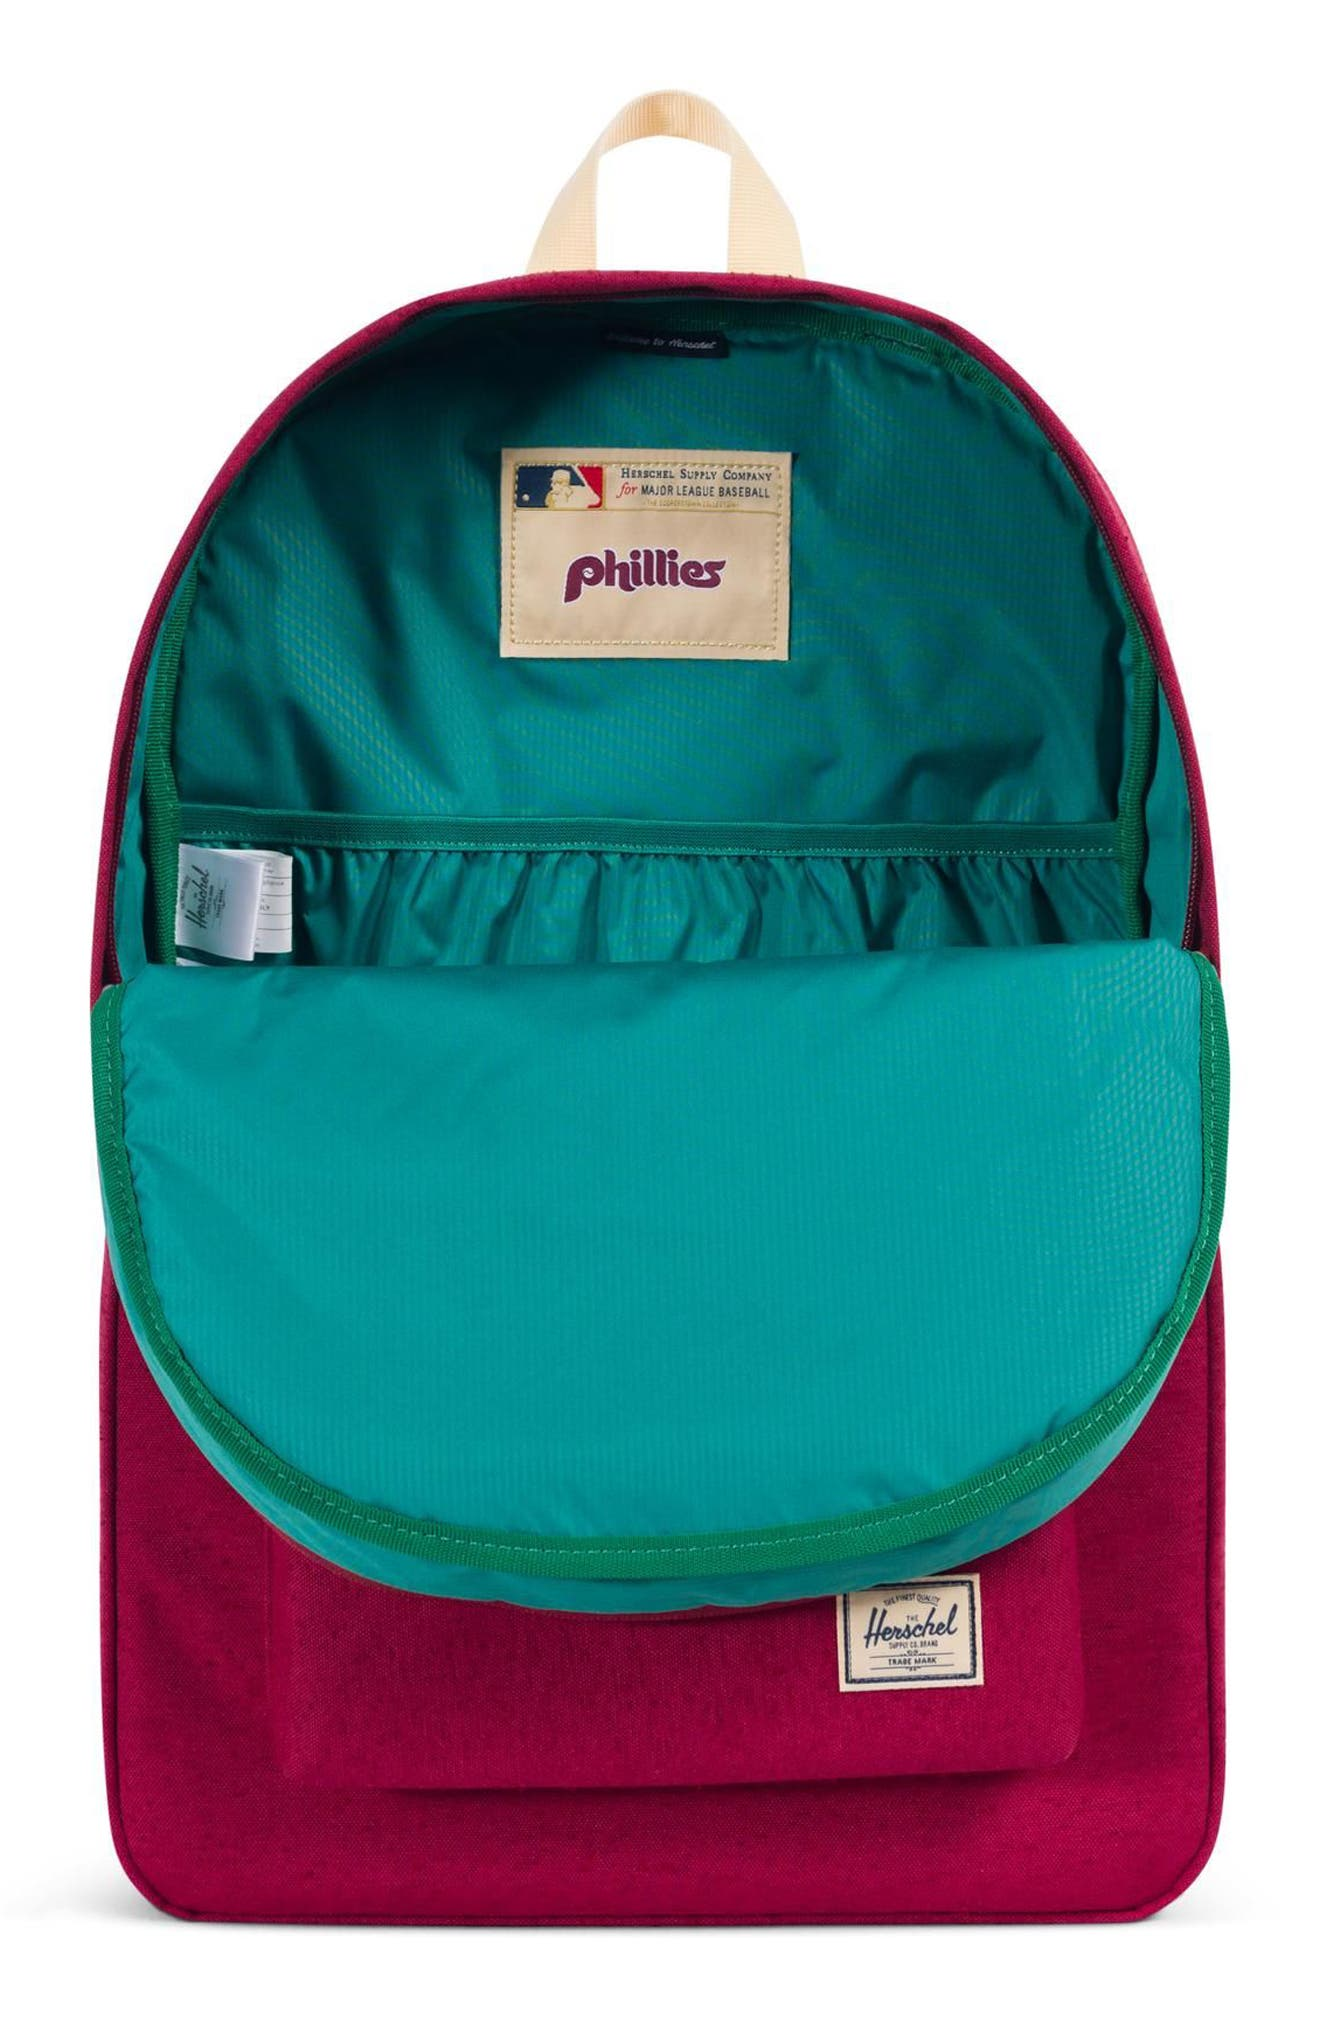 HERSCHEL SUPPLY CO. HERITAGE - MLB COOPERSTOWN COLLECTION BACKPACK - RED, PHILADELPHIA PHILLIES